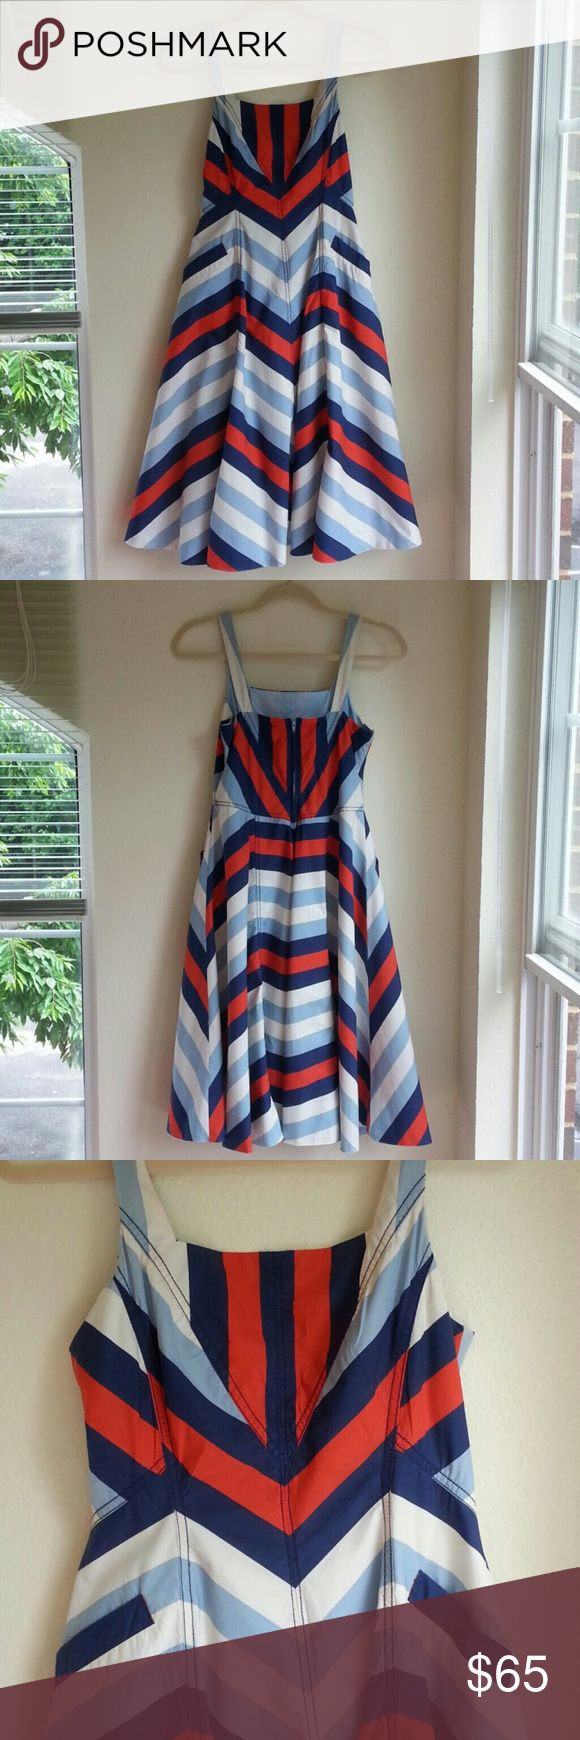 """Anthropologie Red White & Blue Chevron Dress Maeve Stunning retro sundress! Smooth lightweight cotton with a carefully-placed chevron pattern (just check out the bodice!) in navy, powder blue, soft white, and flame/orange-red. Powder blue cotton lining. Nice full skirt, handy pockets, lingerie straps to snap your bra straps into place and keep them hidden, concealed back zip. Dress is in great condition! Ideal for any patriotic event, military homecoming, 4th of July, etc.! Pit to pit 15.5""""…"""